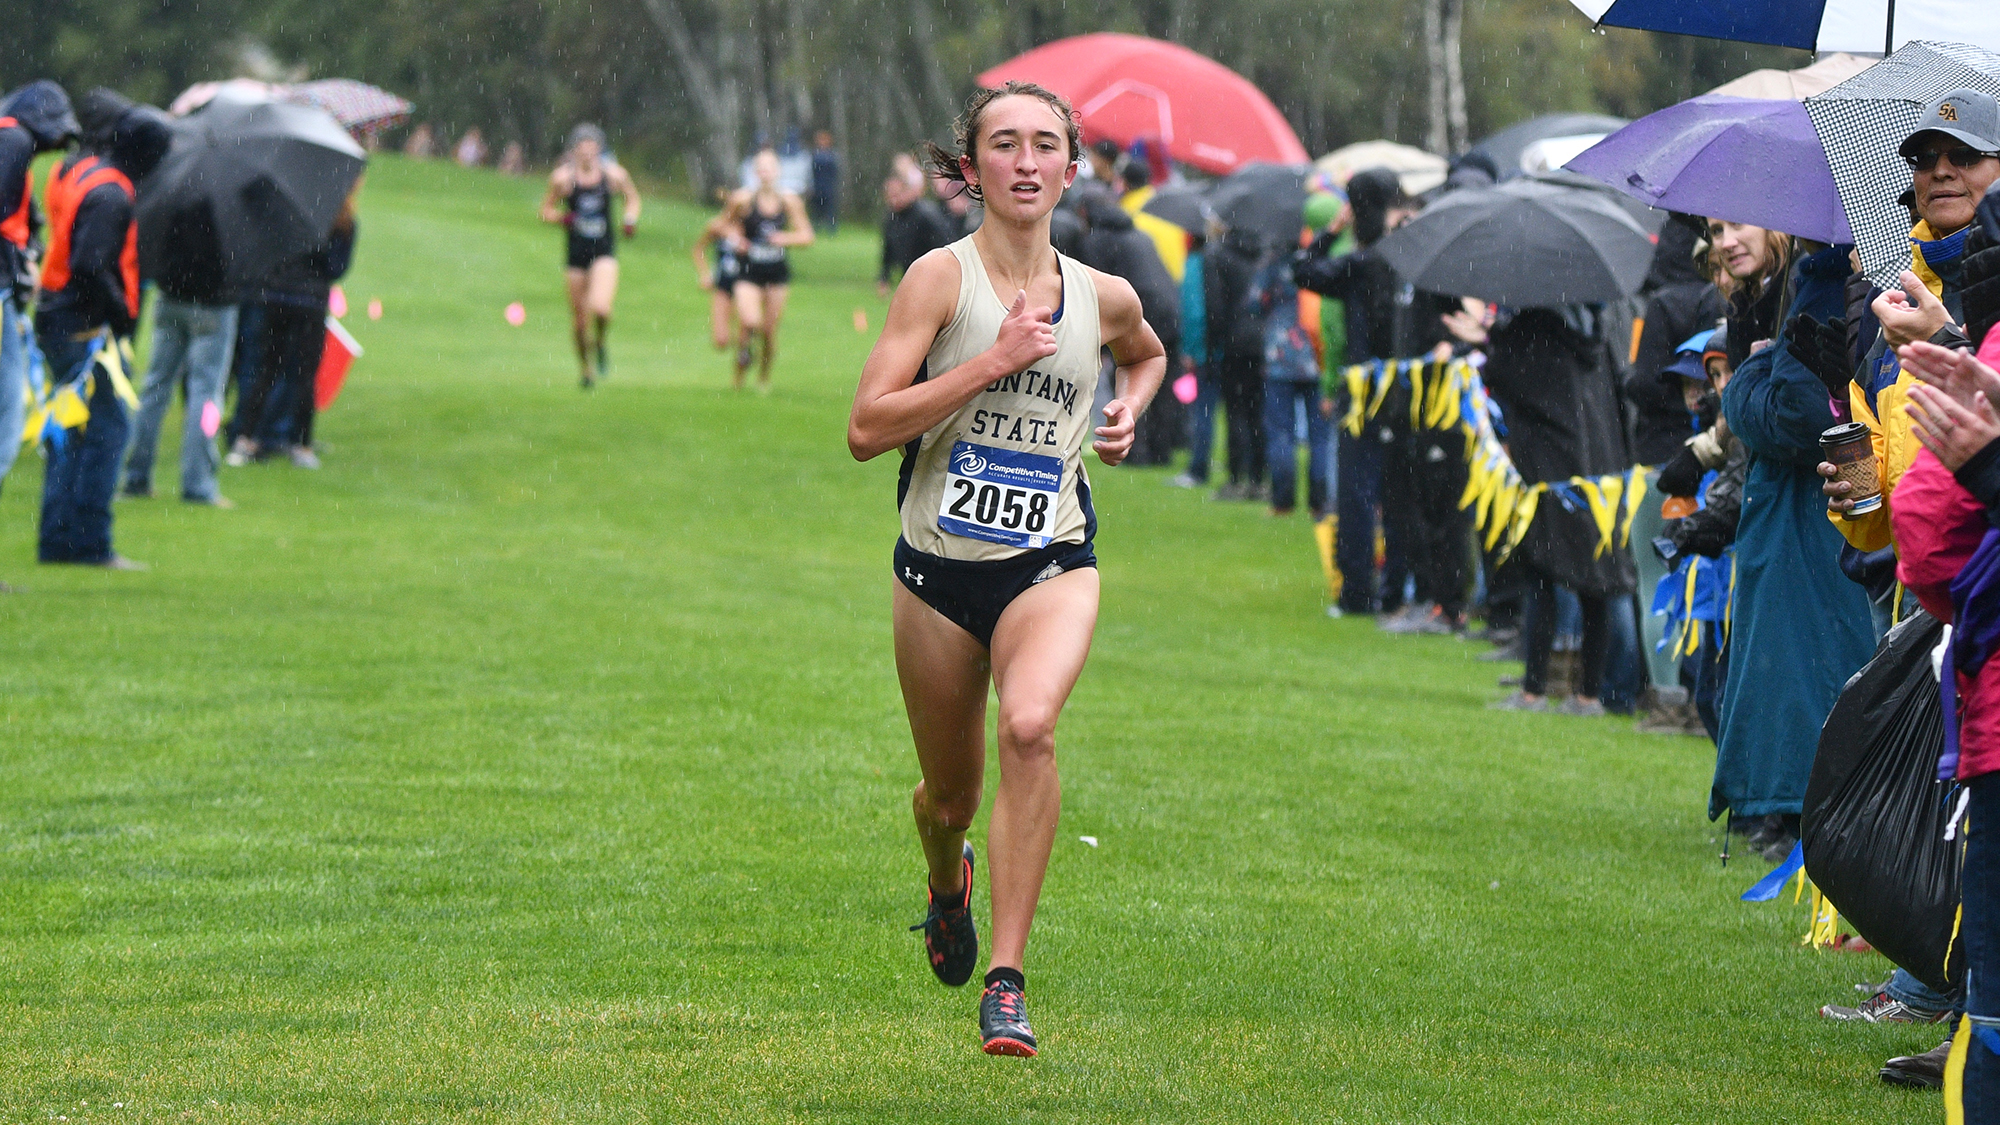 Bobcat Men Finish First, Noe Leads MSU Women at Cross Country Classic